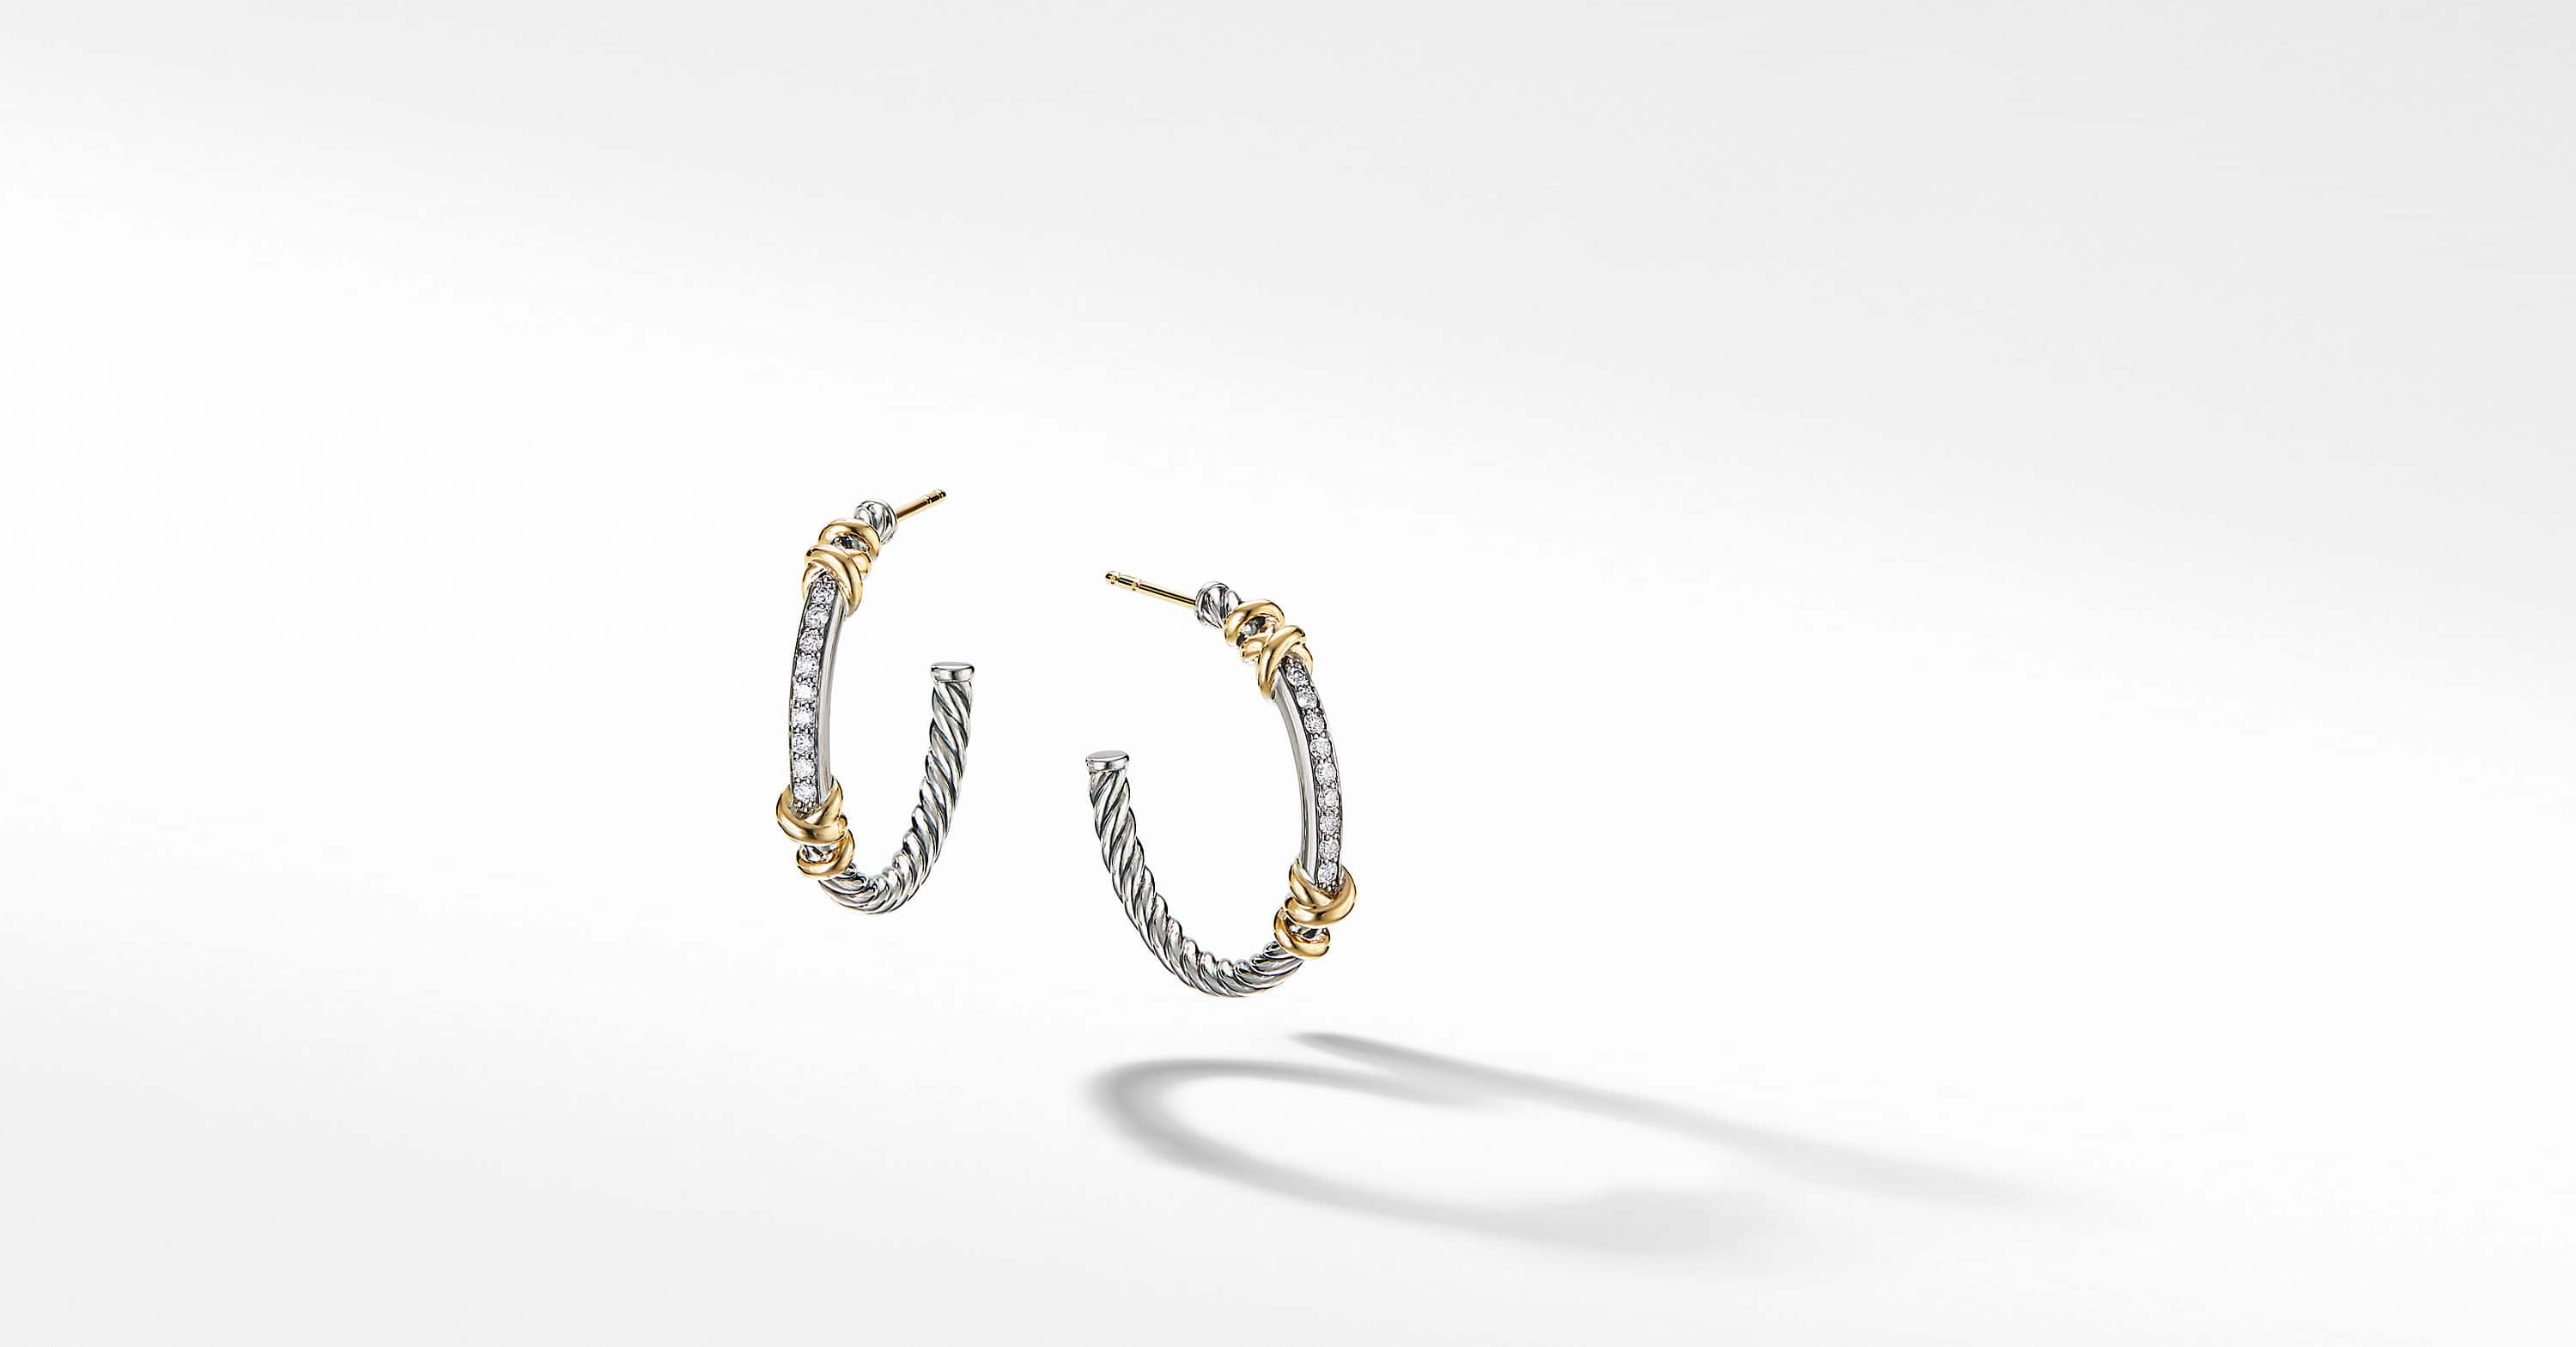 Petite Helena Hoop Earrings with 18K Yellow Gold and Diamonds, 1""